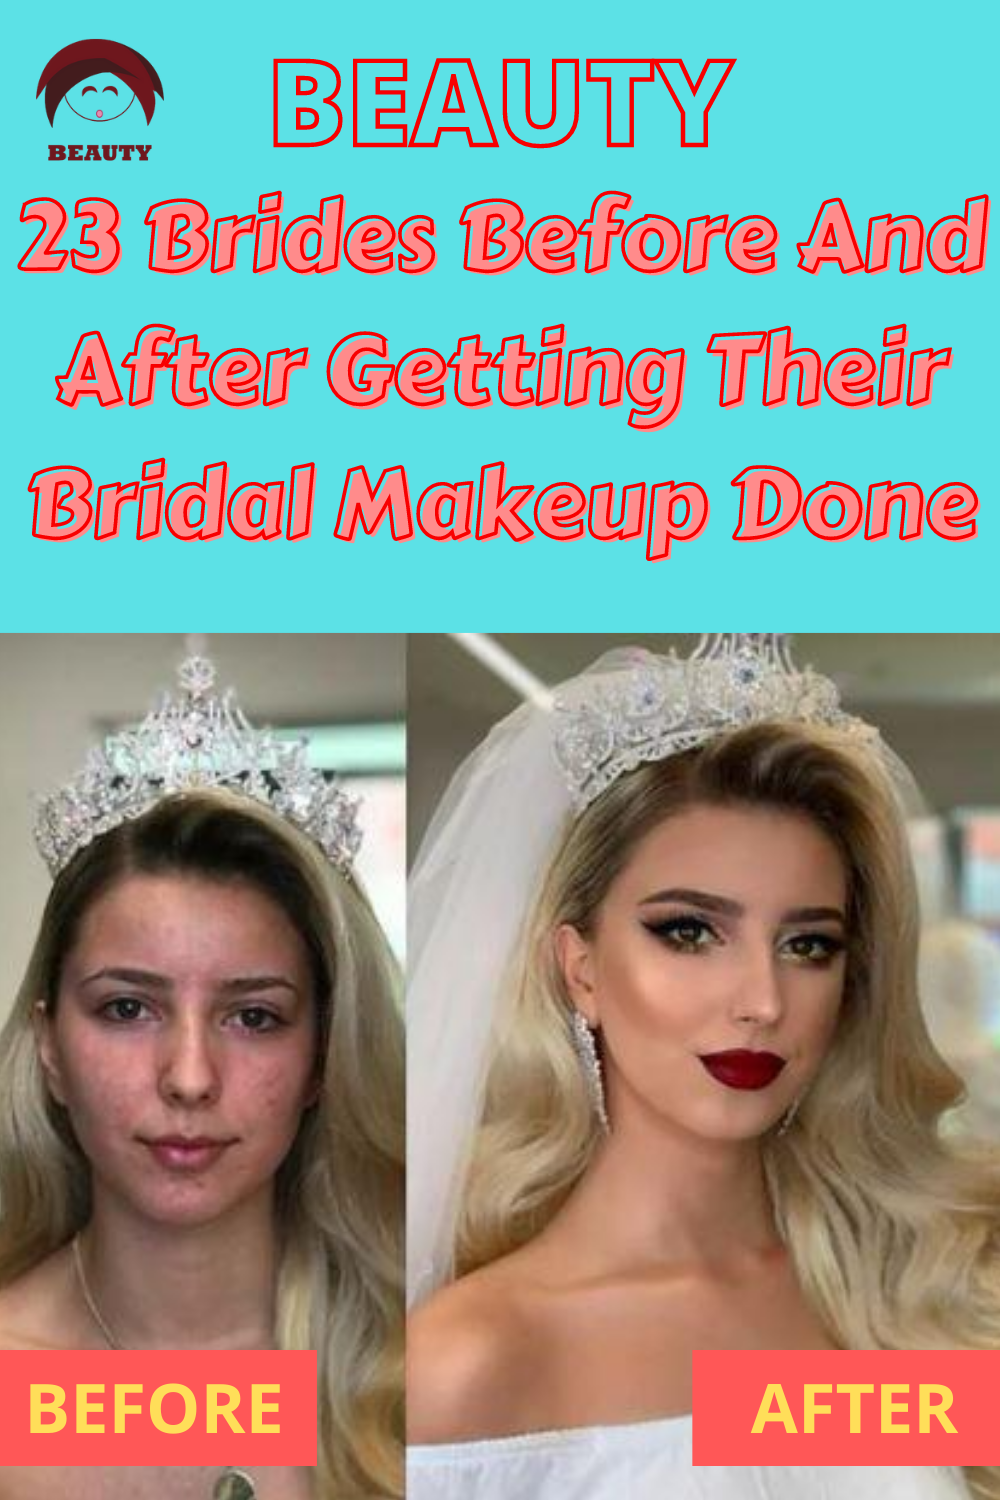 23 Brides Before And After Getting Their Bridal Makeup Done -   13 makeup DIY hacks ideas